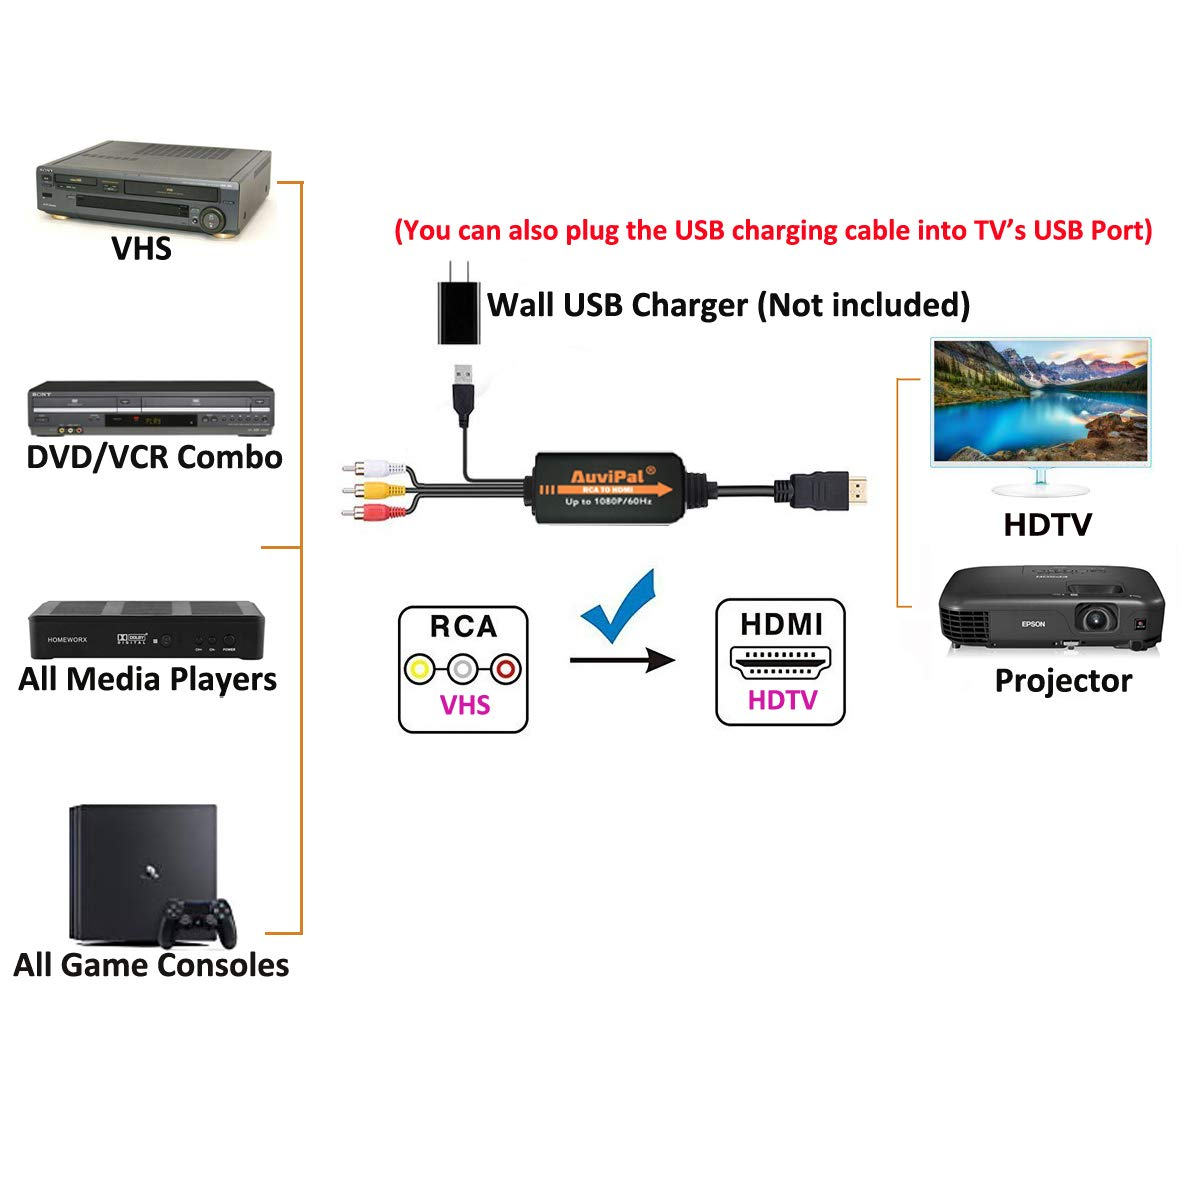 1080P RCA to HDMI Converter Cable, AuviPal AV to HDMI Adapter for Playing VHS/VCR/DVD Player/Game Consoles etc on Modern TV. All-in-One 3RCA Composite AV to HDMI Video Converter by AuviPal (Image #2)